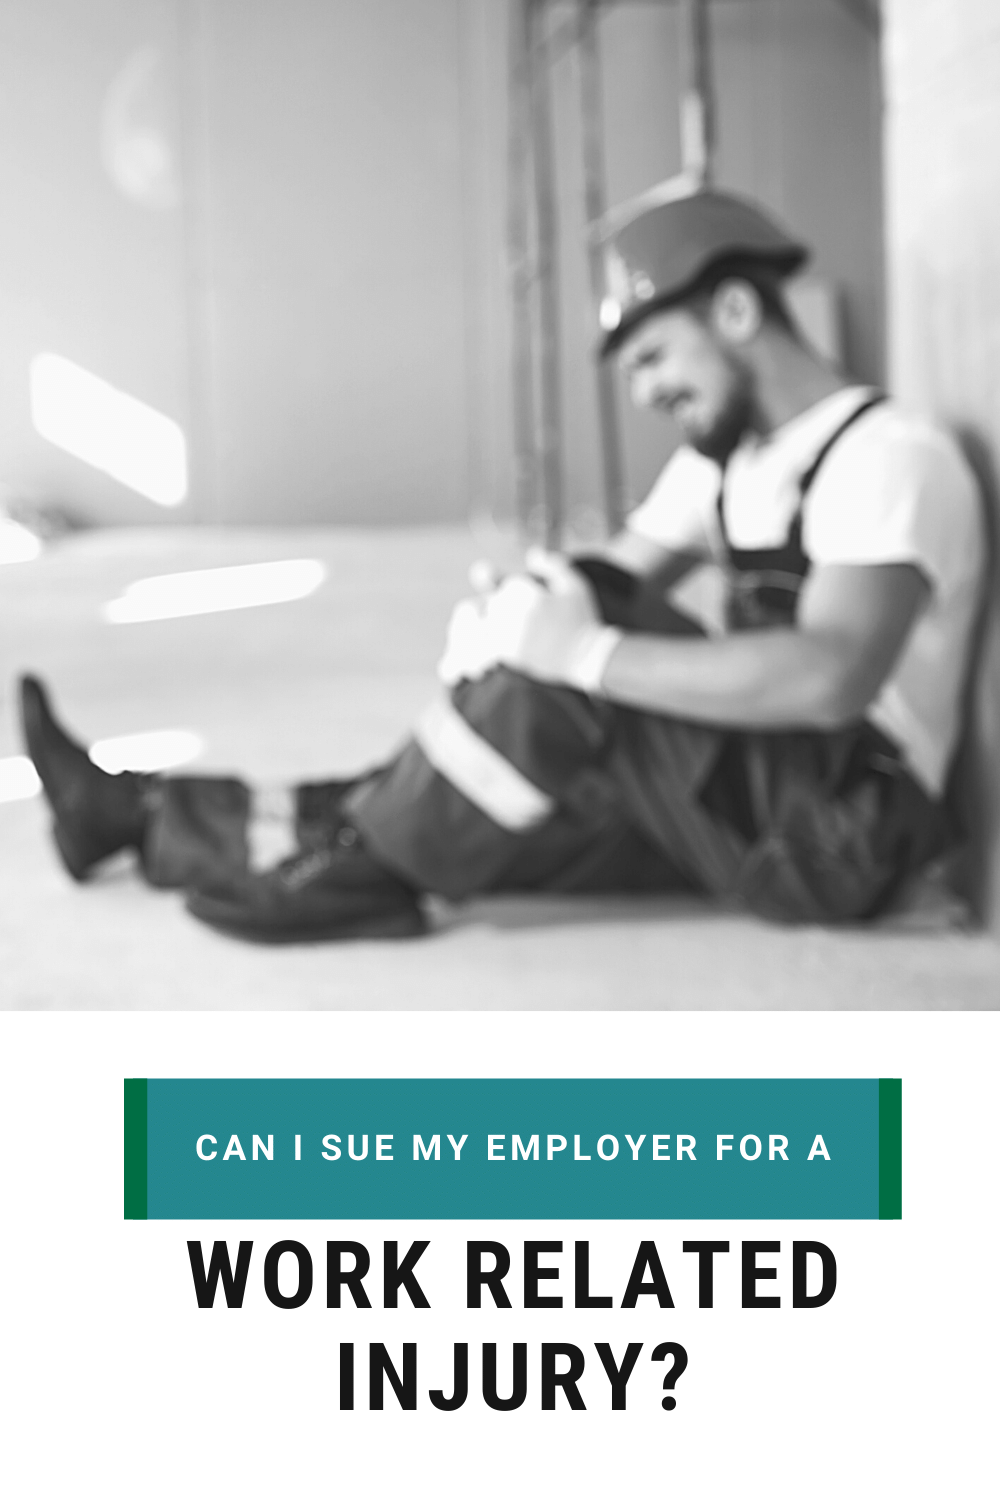 Can I Sue My Employer For A Work Related Injury?